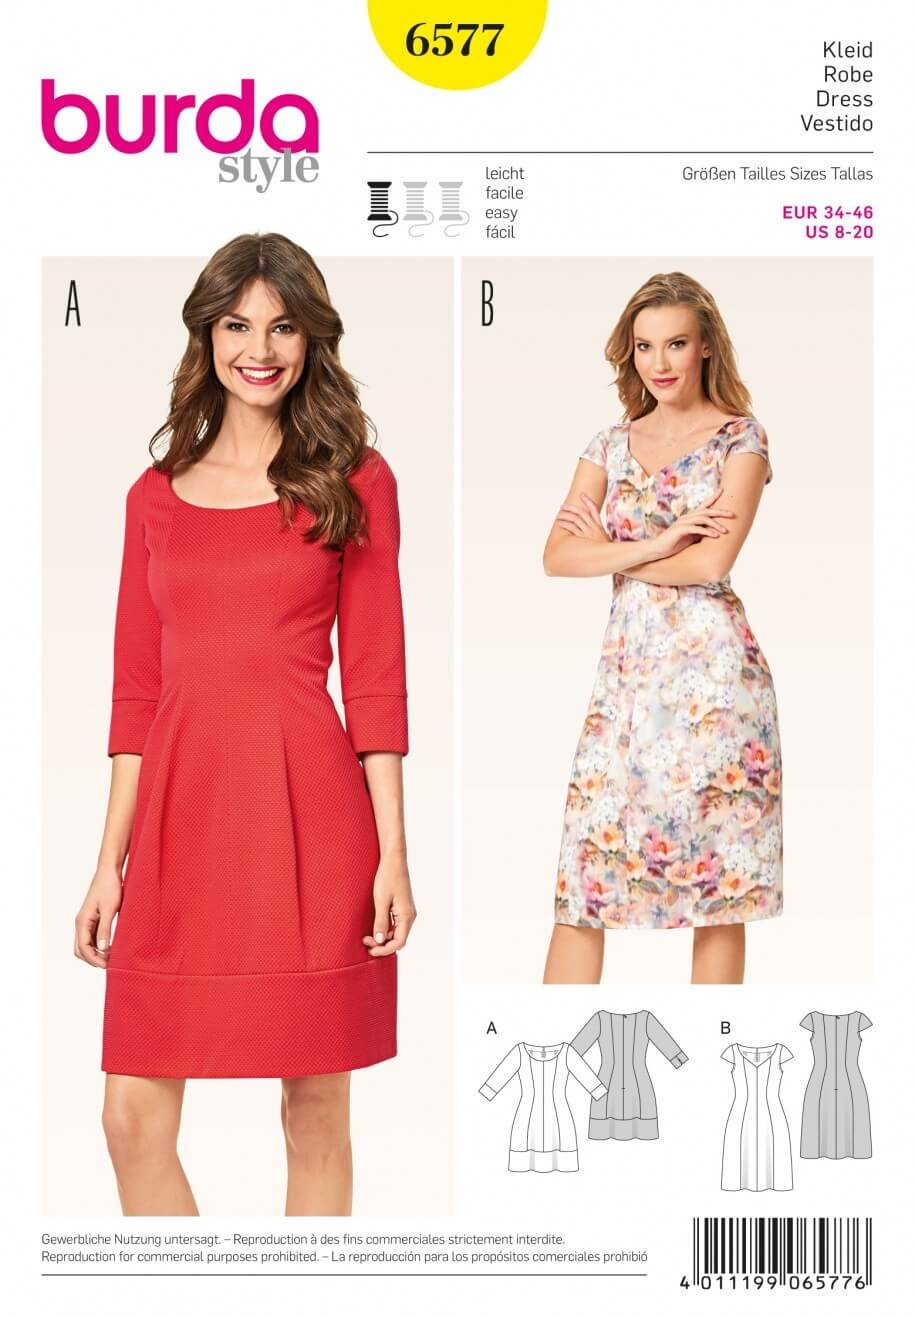 Burda Misses Panel Shaping Knee Length Dress Sewing Pattern 6577